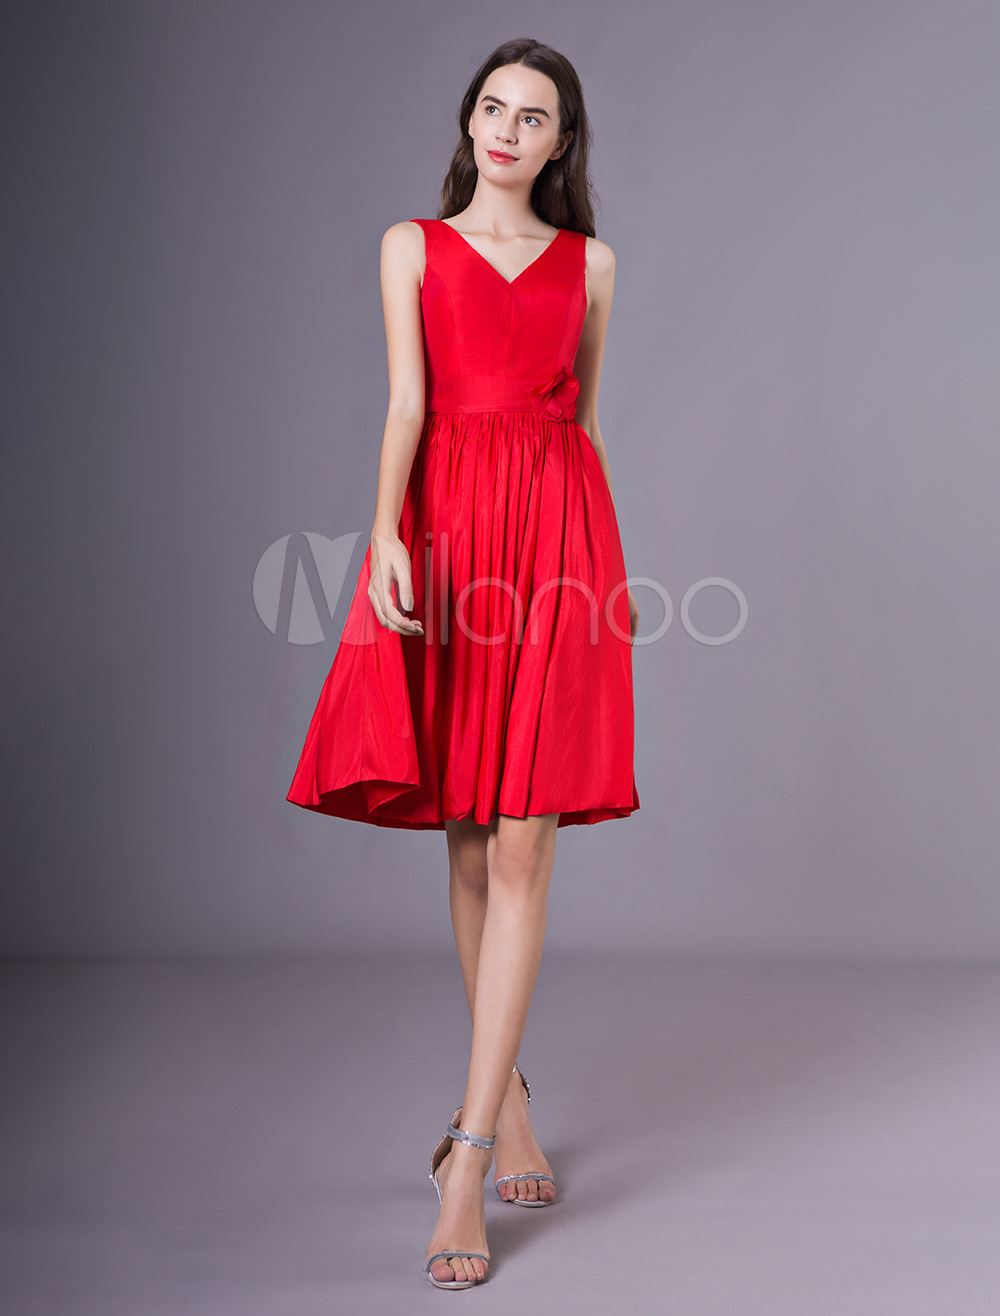 Cocktail Party Dresses Red V Neck Taffeta Flower Wedding Guest Dress